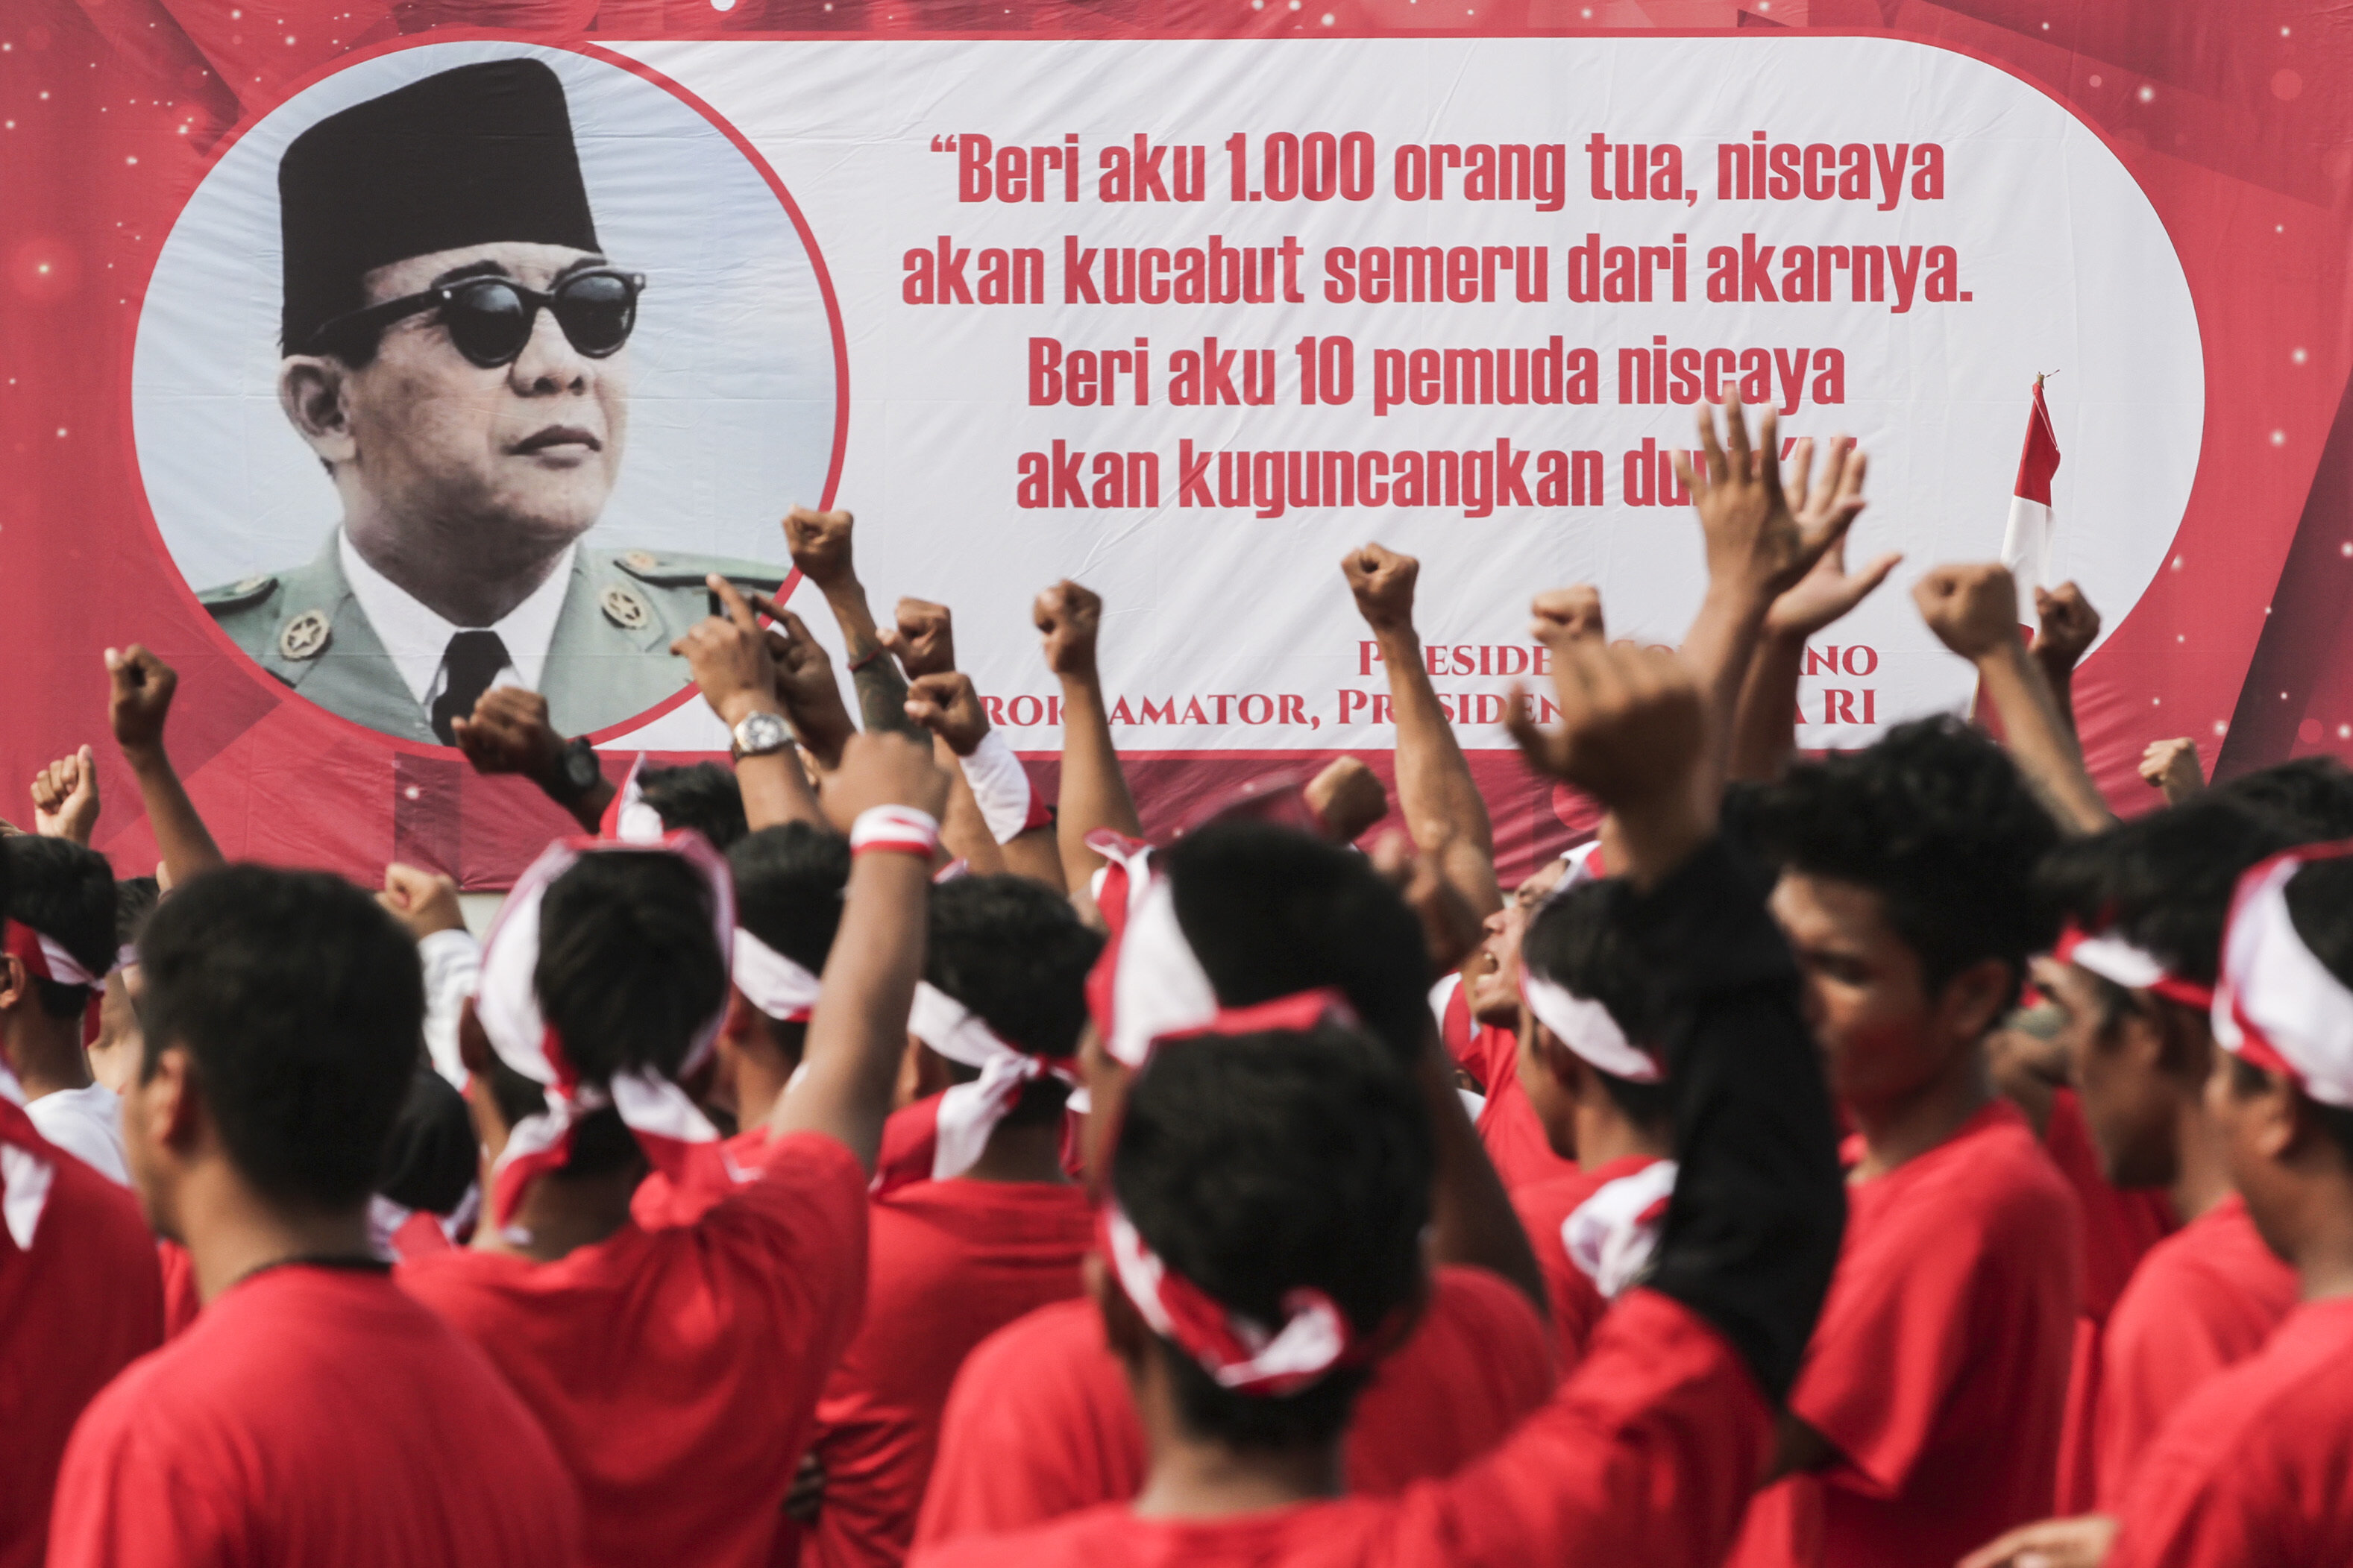 Prisoners celebrate the 74th Indonesian independence